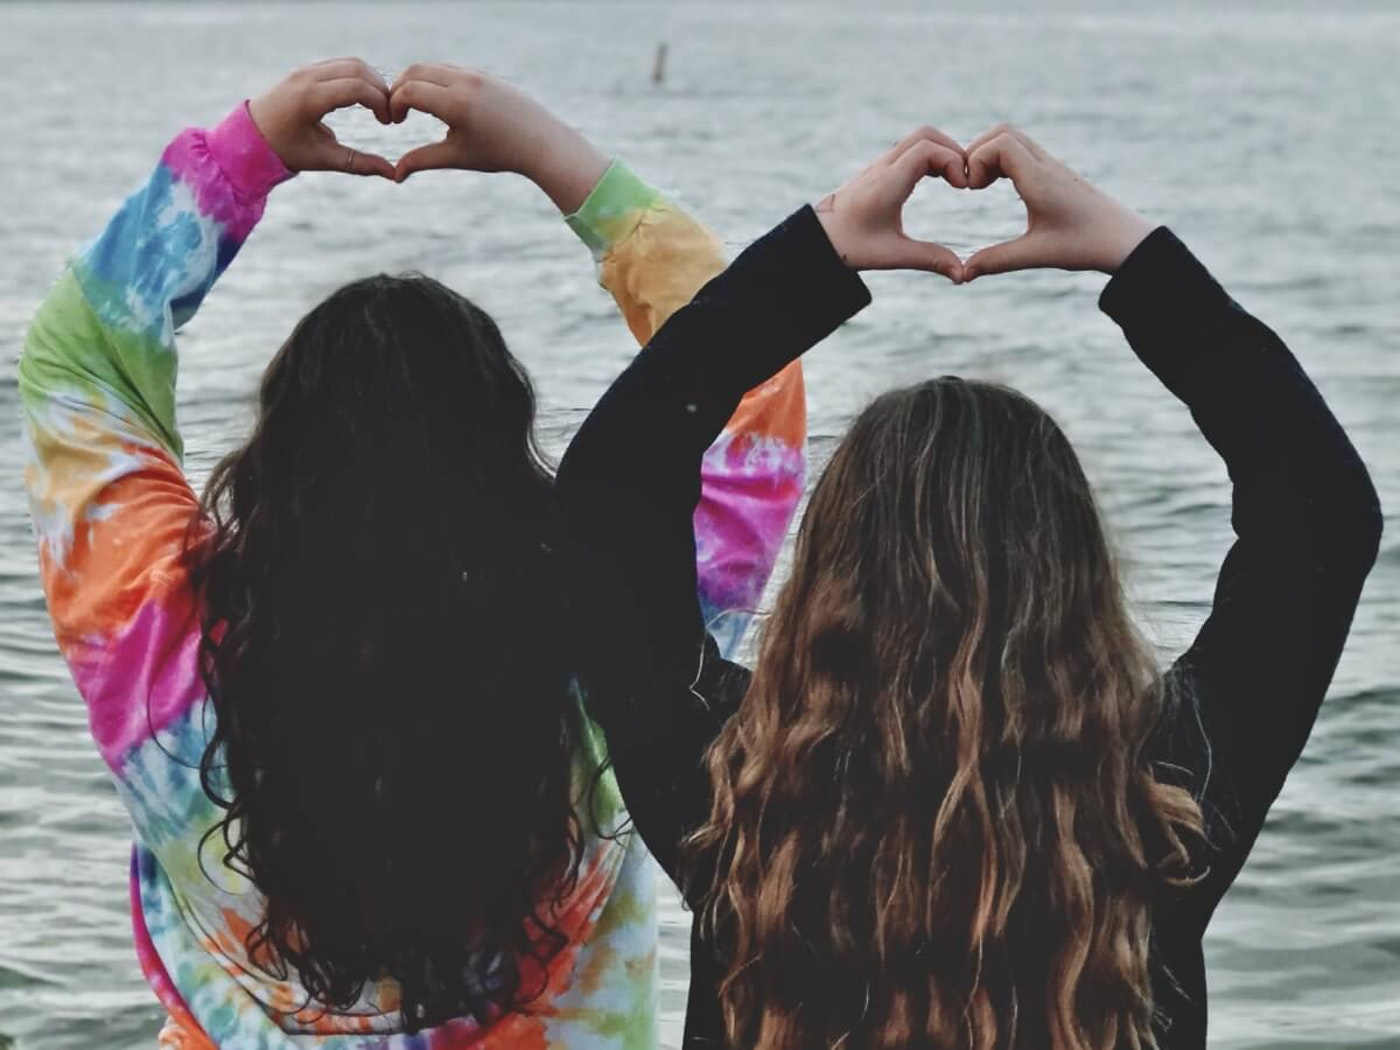 Hearts of hope, behind view of two sisters on Lake Michigan holding up their hands, making heart shapes.